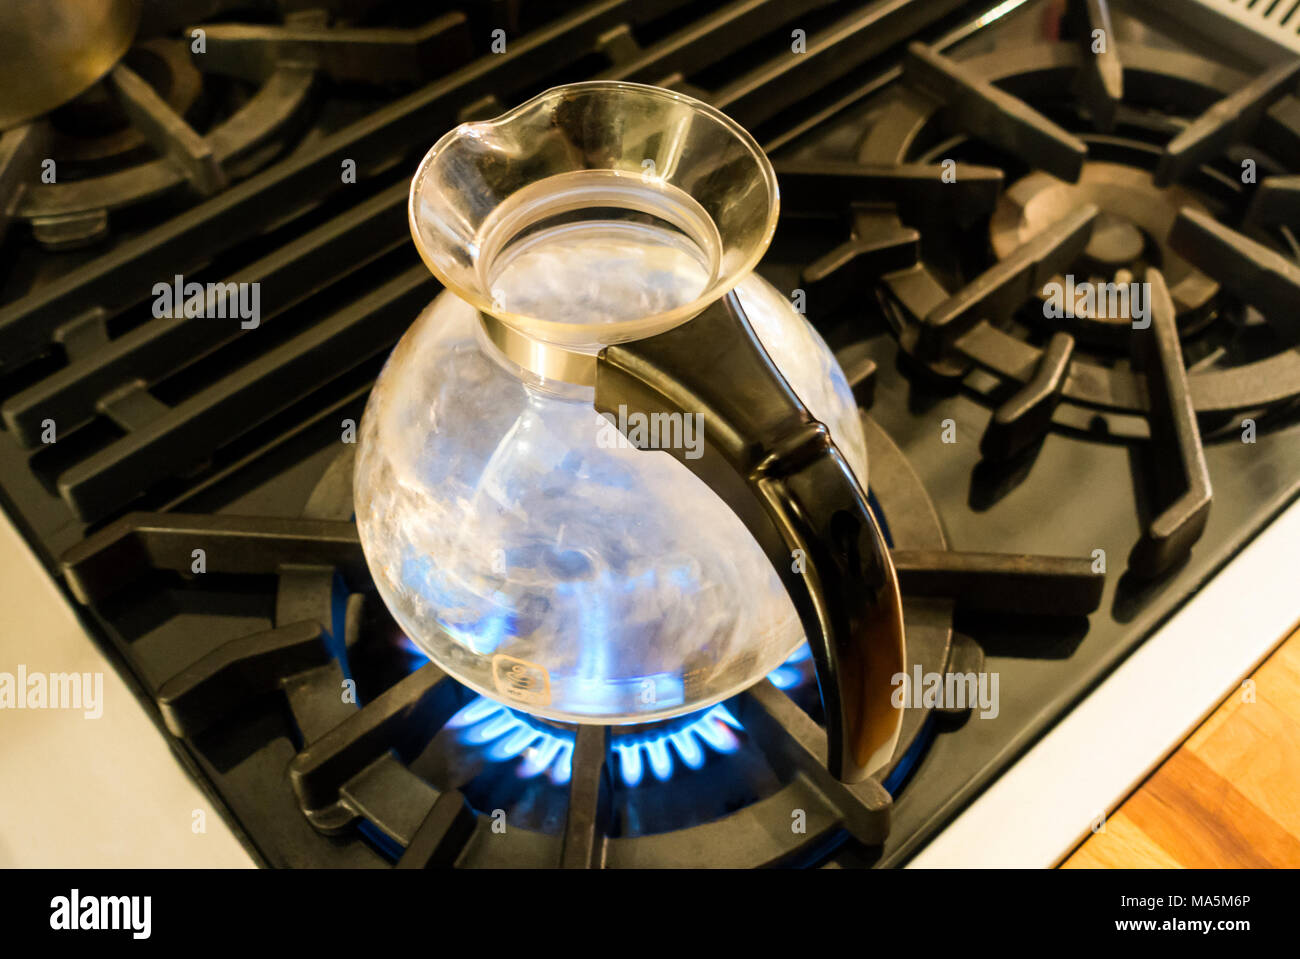 Water boiling in a One All glass Whistling Kettle by Medelco on a stovetop - Stock Image